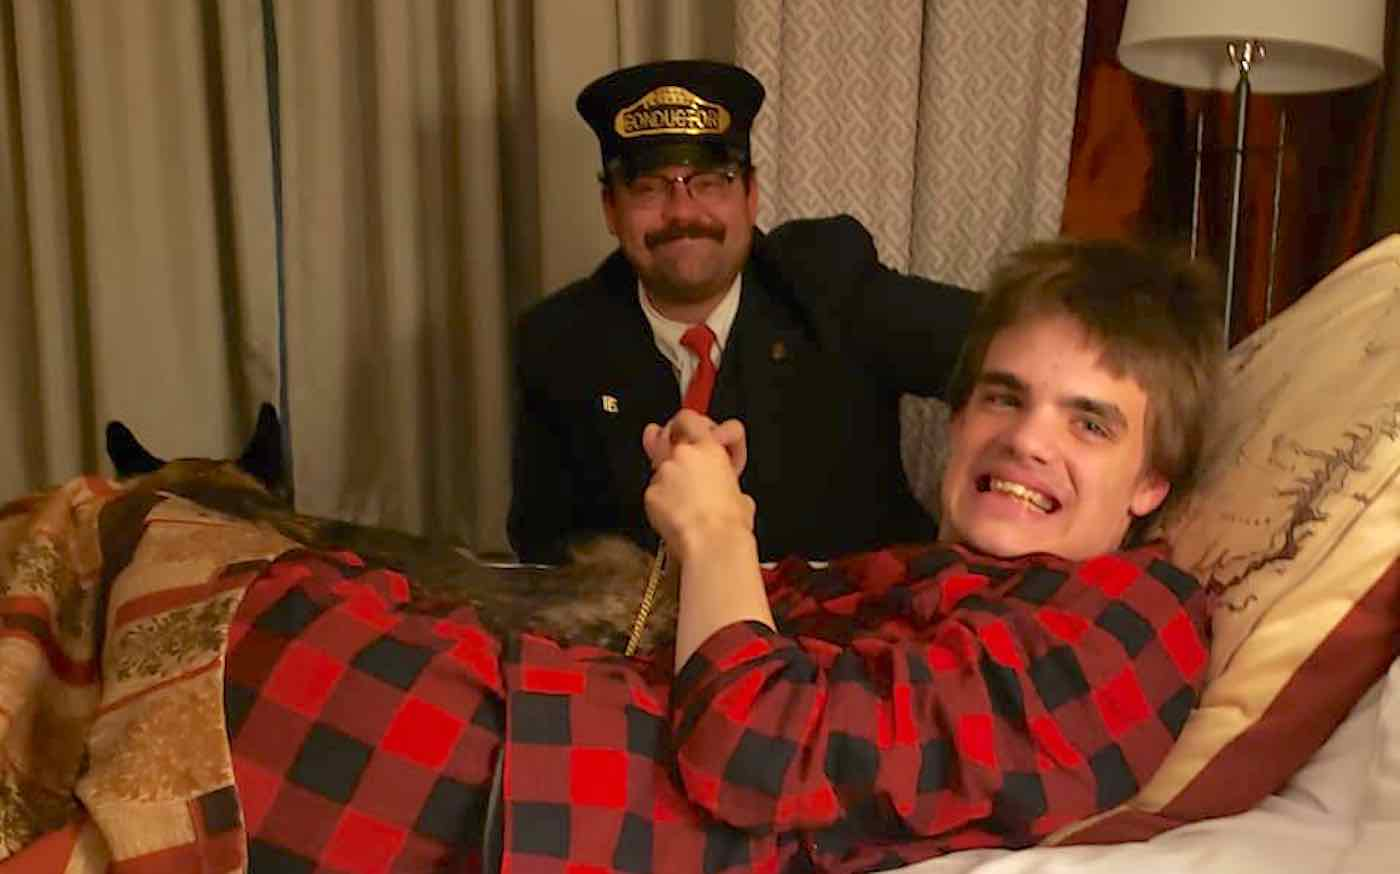 After Teen With Autism Misses Train Ride, 'Polar Express' Crew Gives Him the 'Gift of Human Kindness'